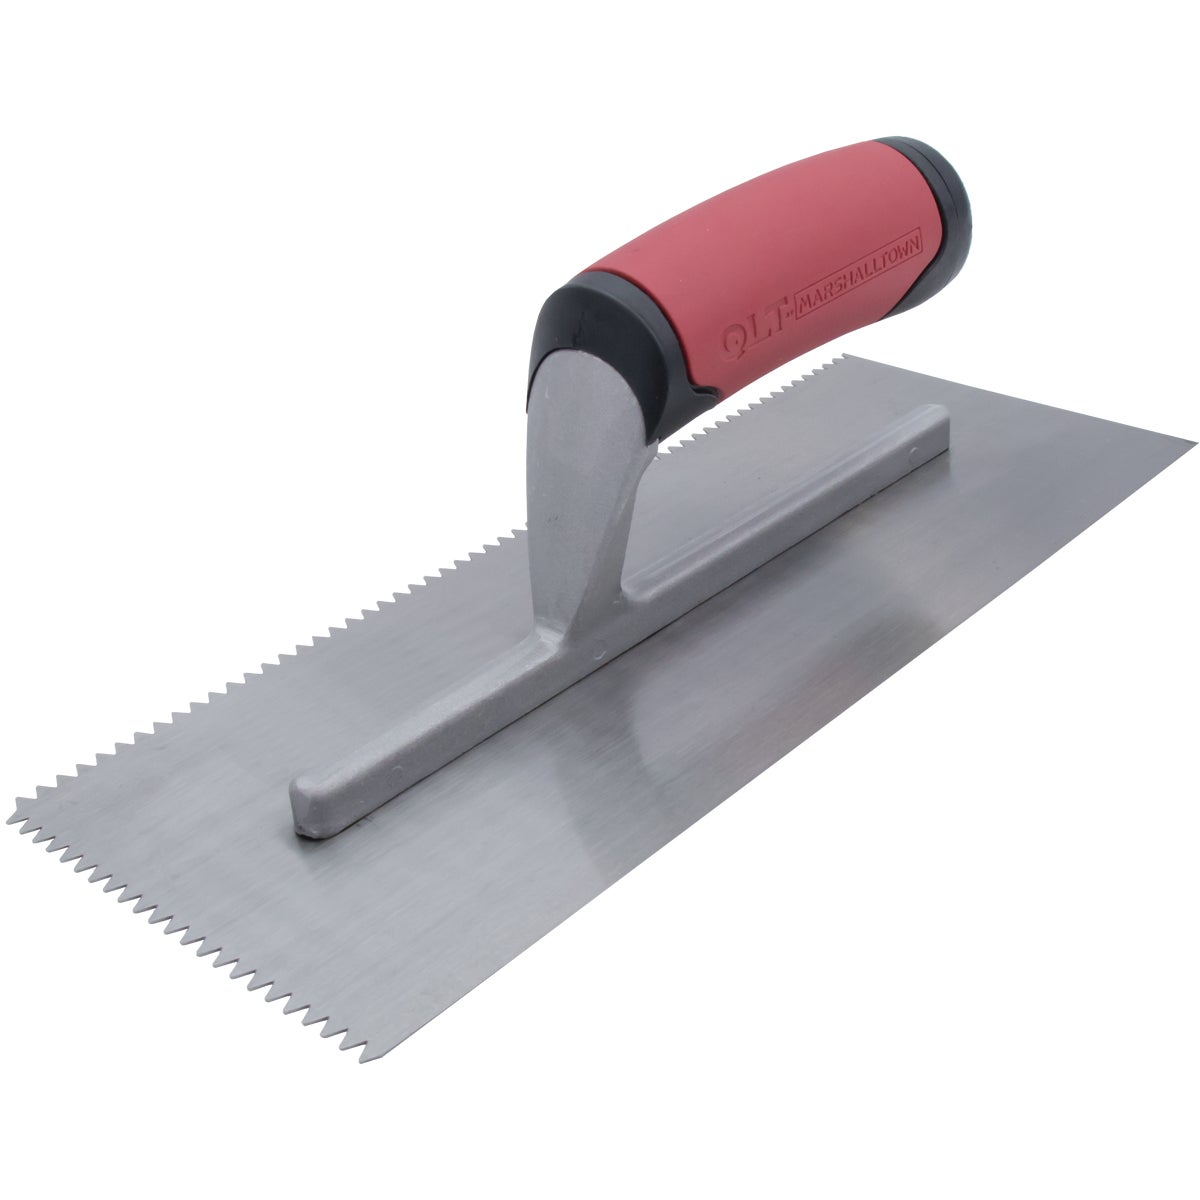 3/16X5/32 NOTCHED TROWEL - 15677 by Marshalltown Trowel